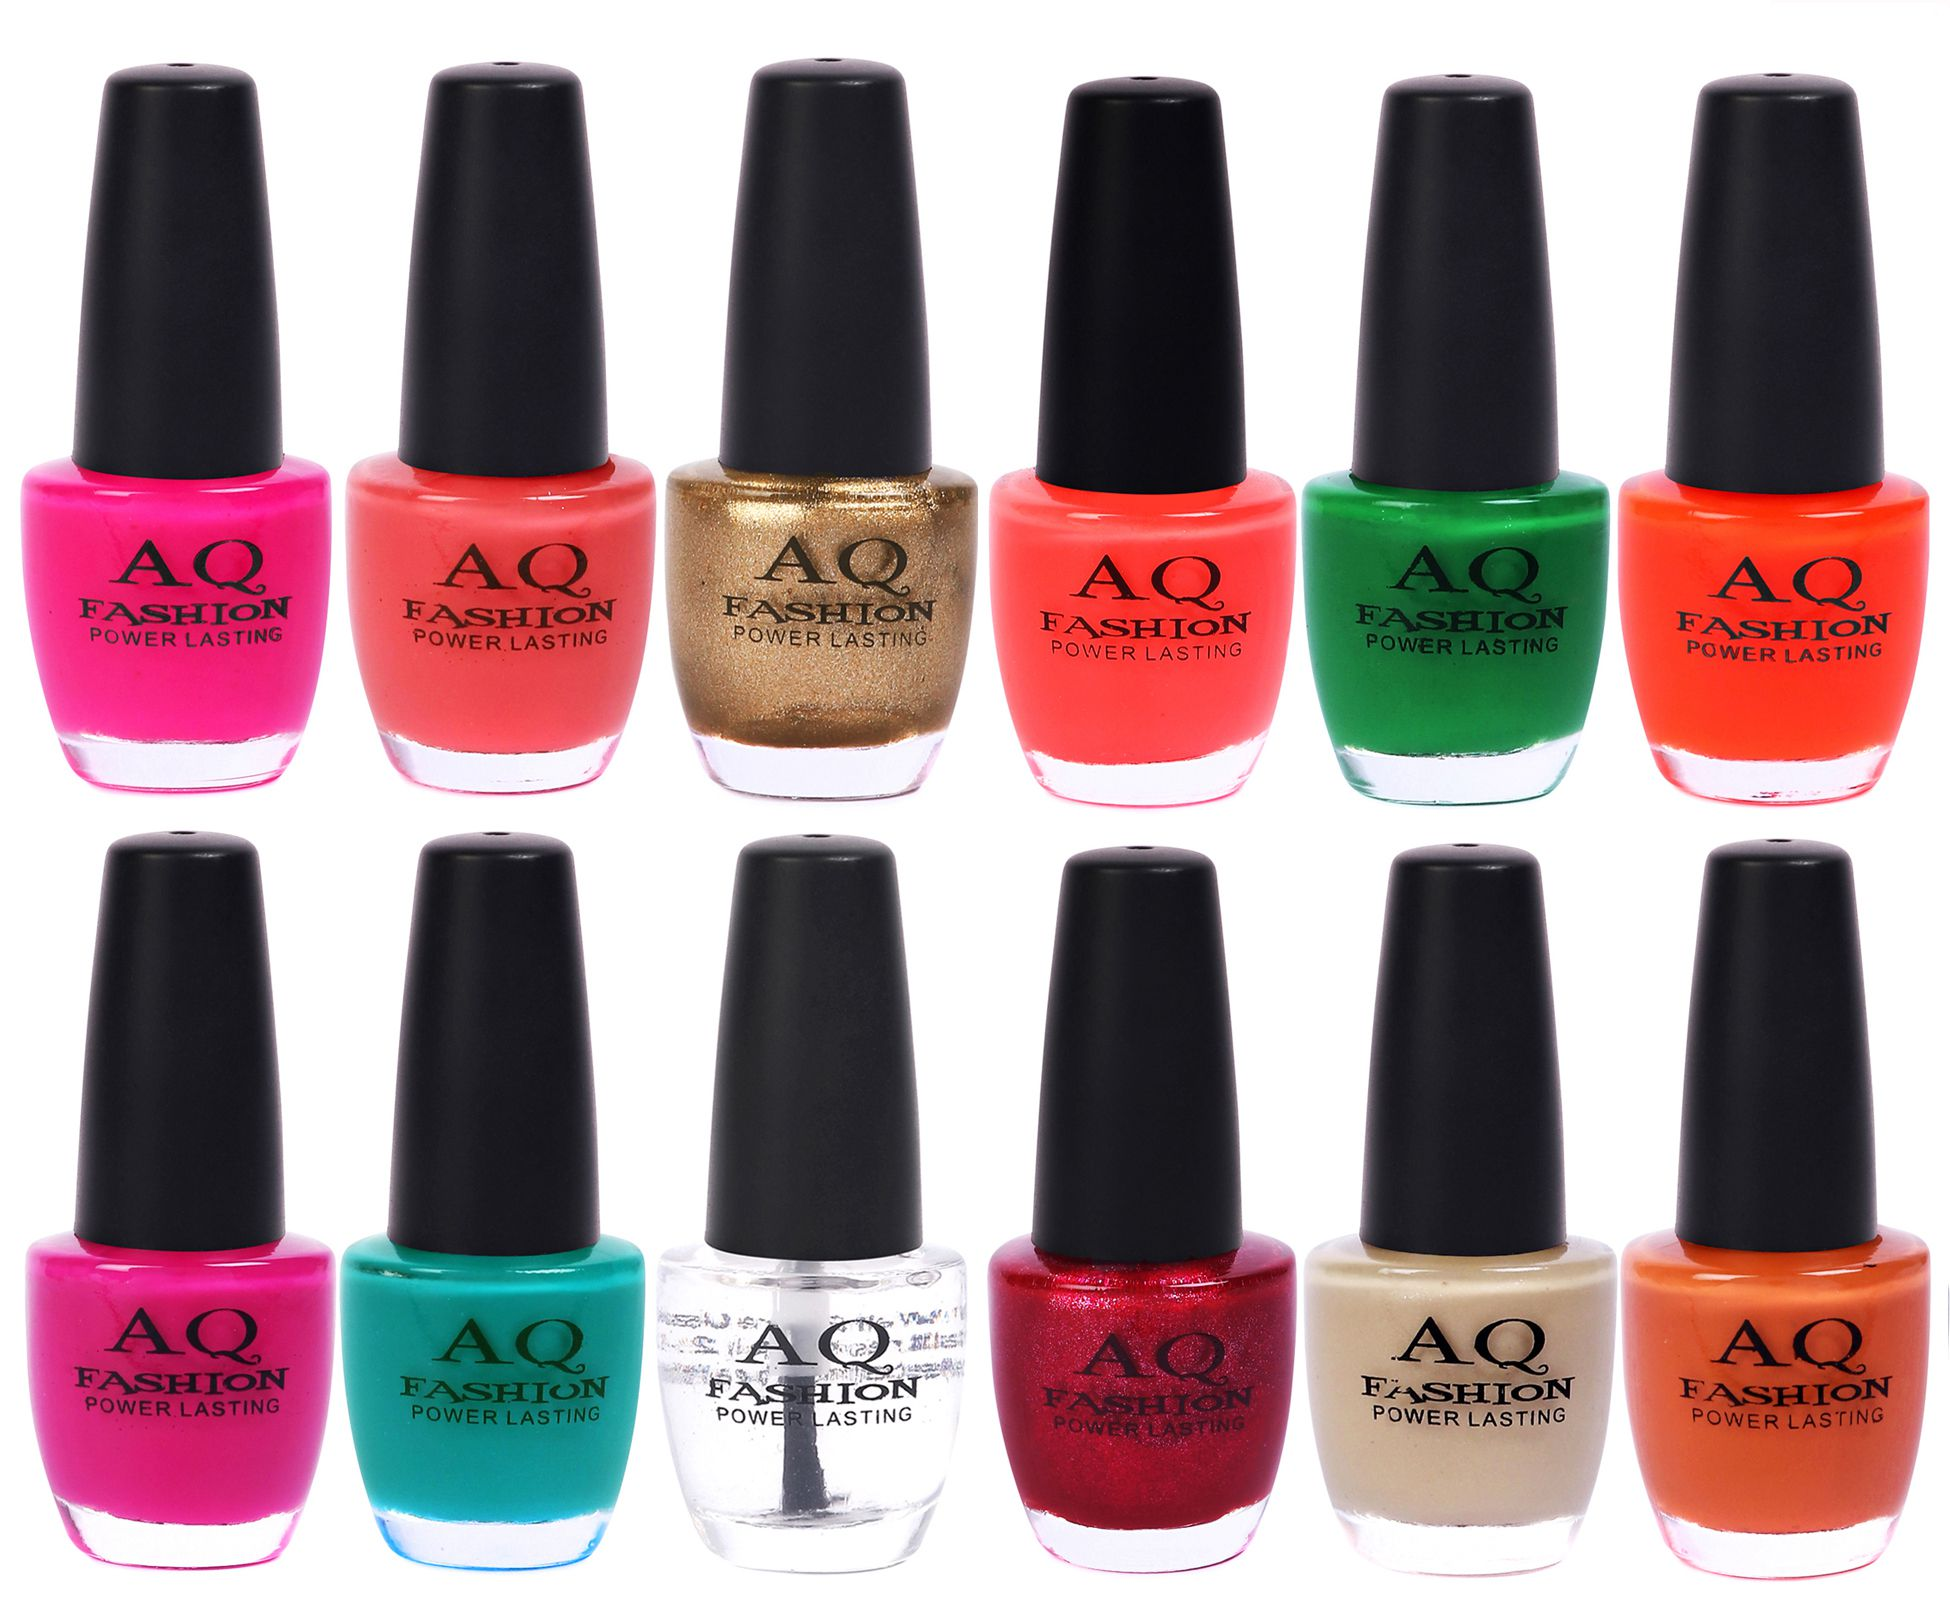 AQ Fashion Nail Polish Classical Color Range Nail Lacquer Matte 144 ml